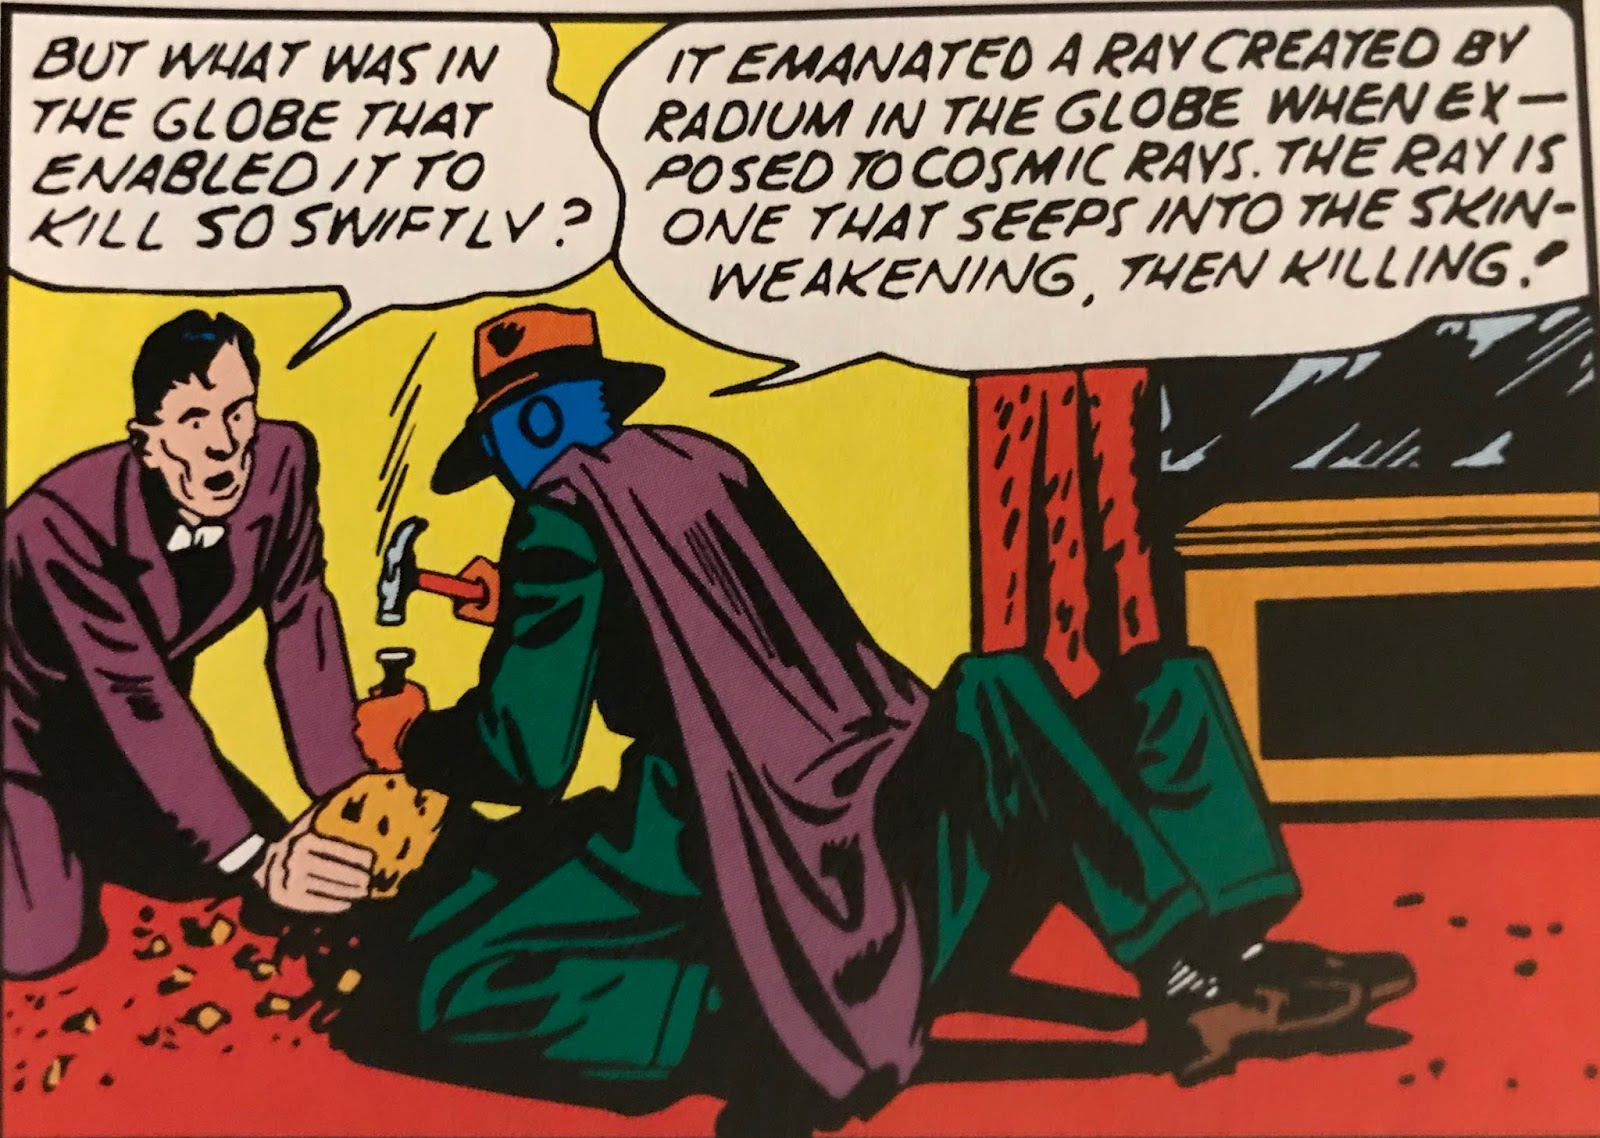 This Is To My Knowledge The Only Time A Villains Unmasking Was Achieved Through Hammer And Chisel